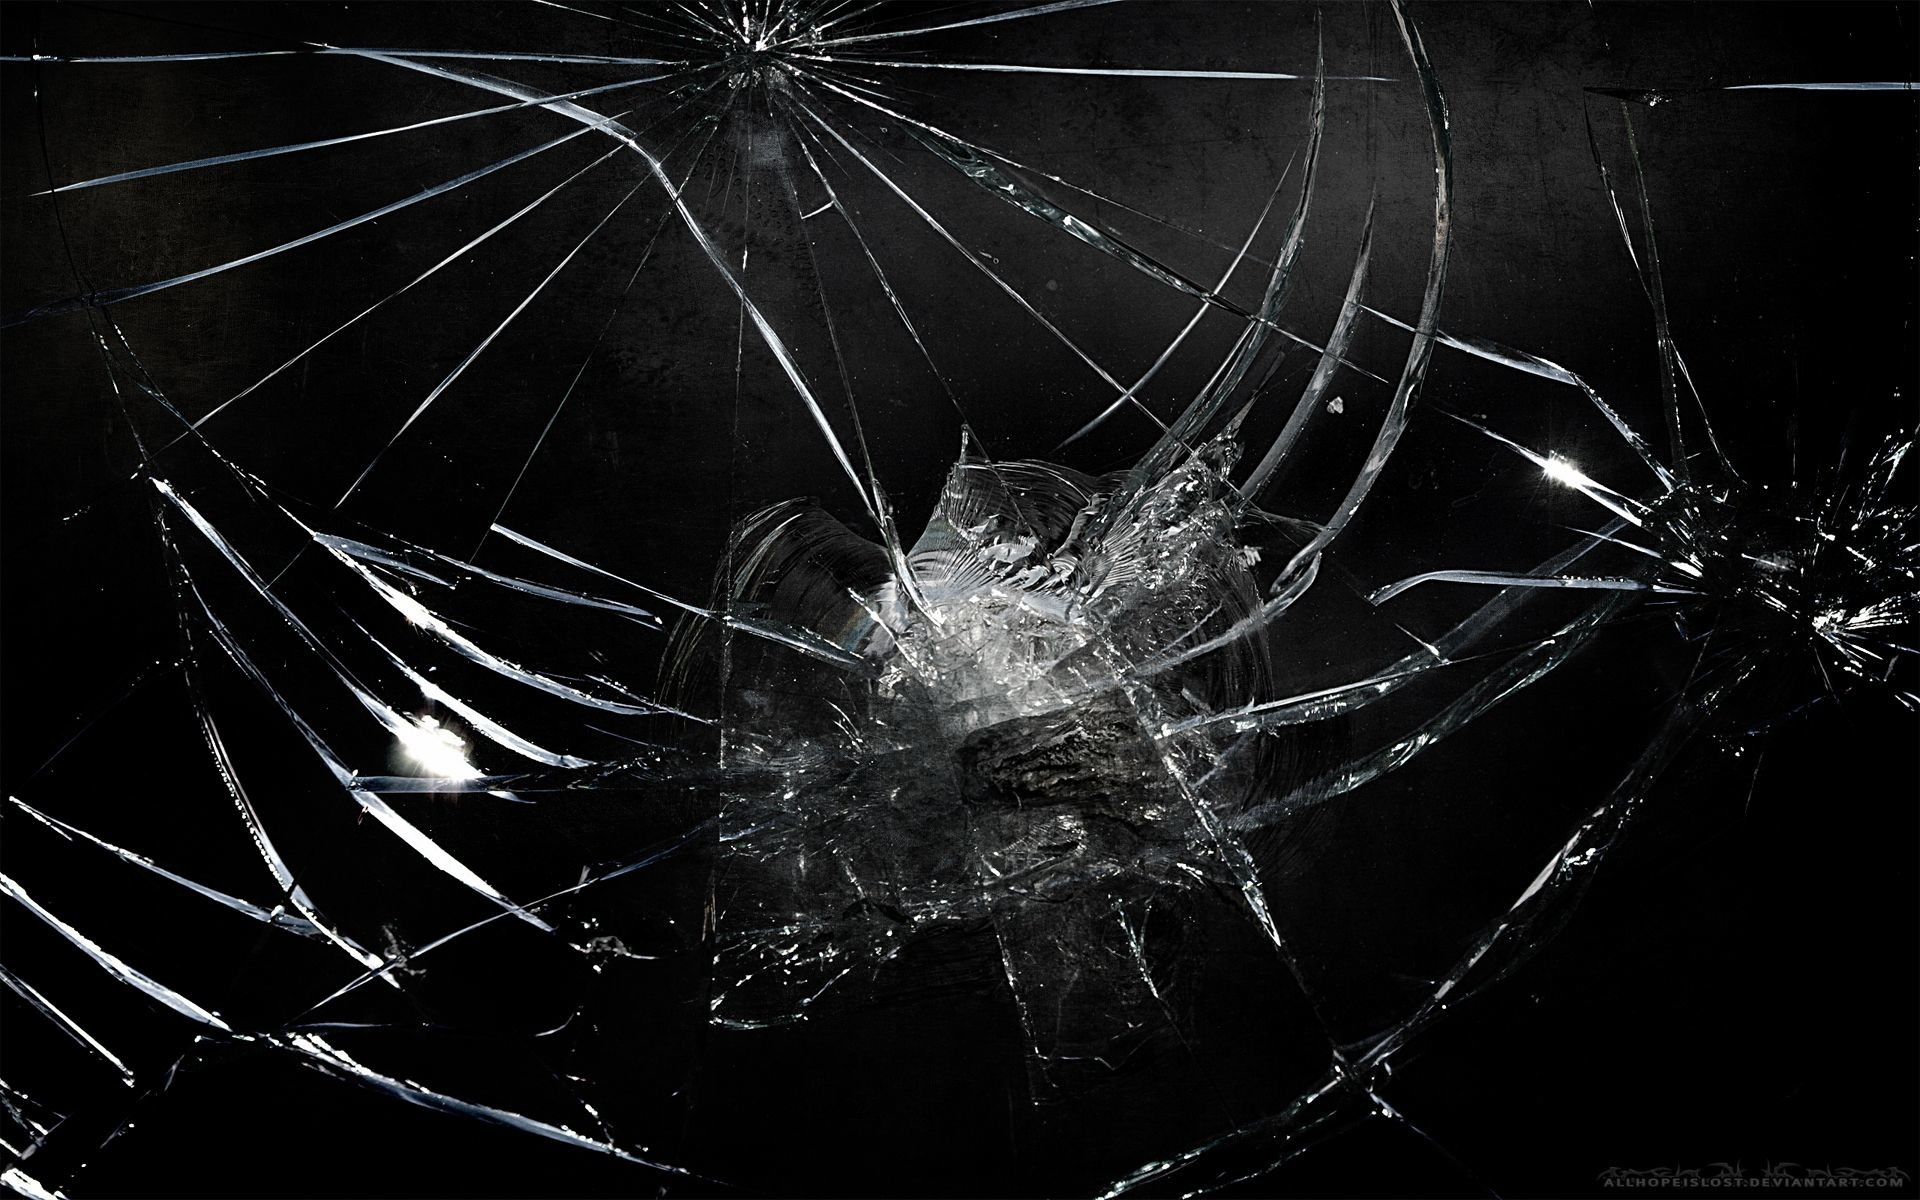 Res: 1920x1200, 45 Realistic Cracked and Broken Screen Wallpapers - Technosamrat